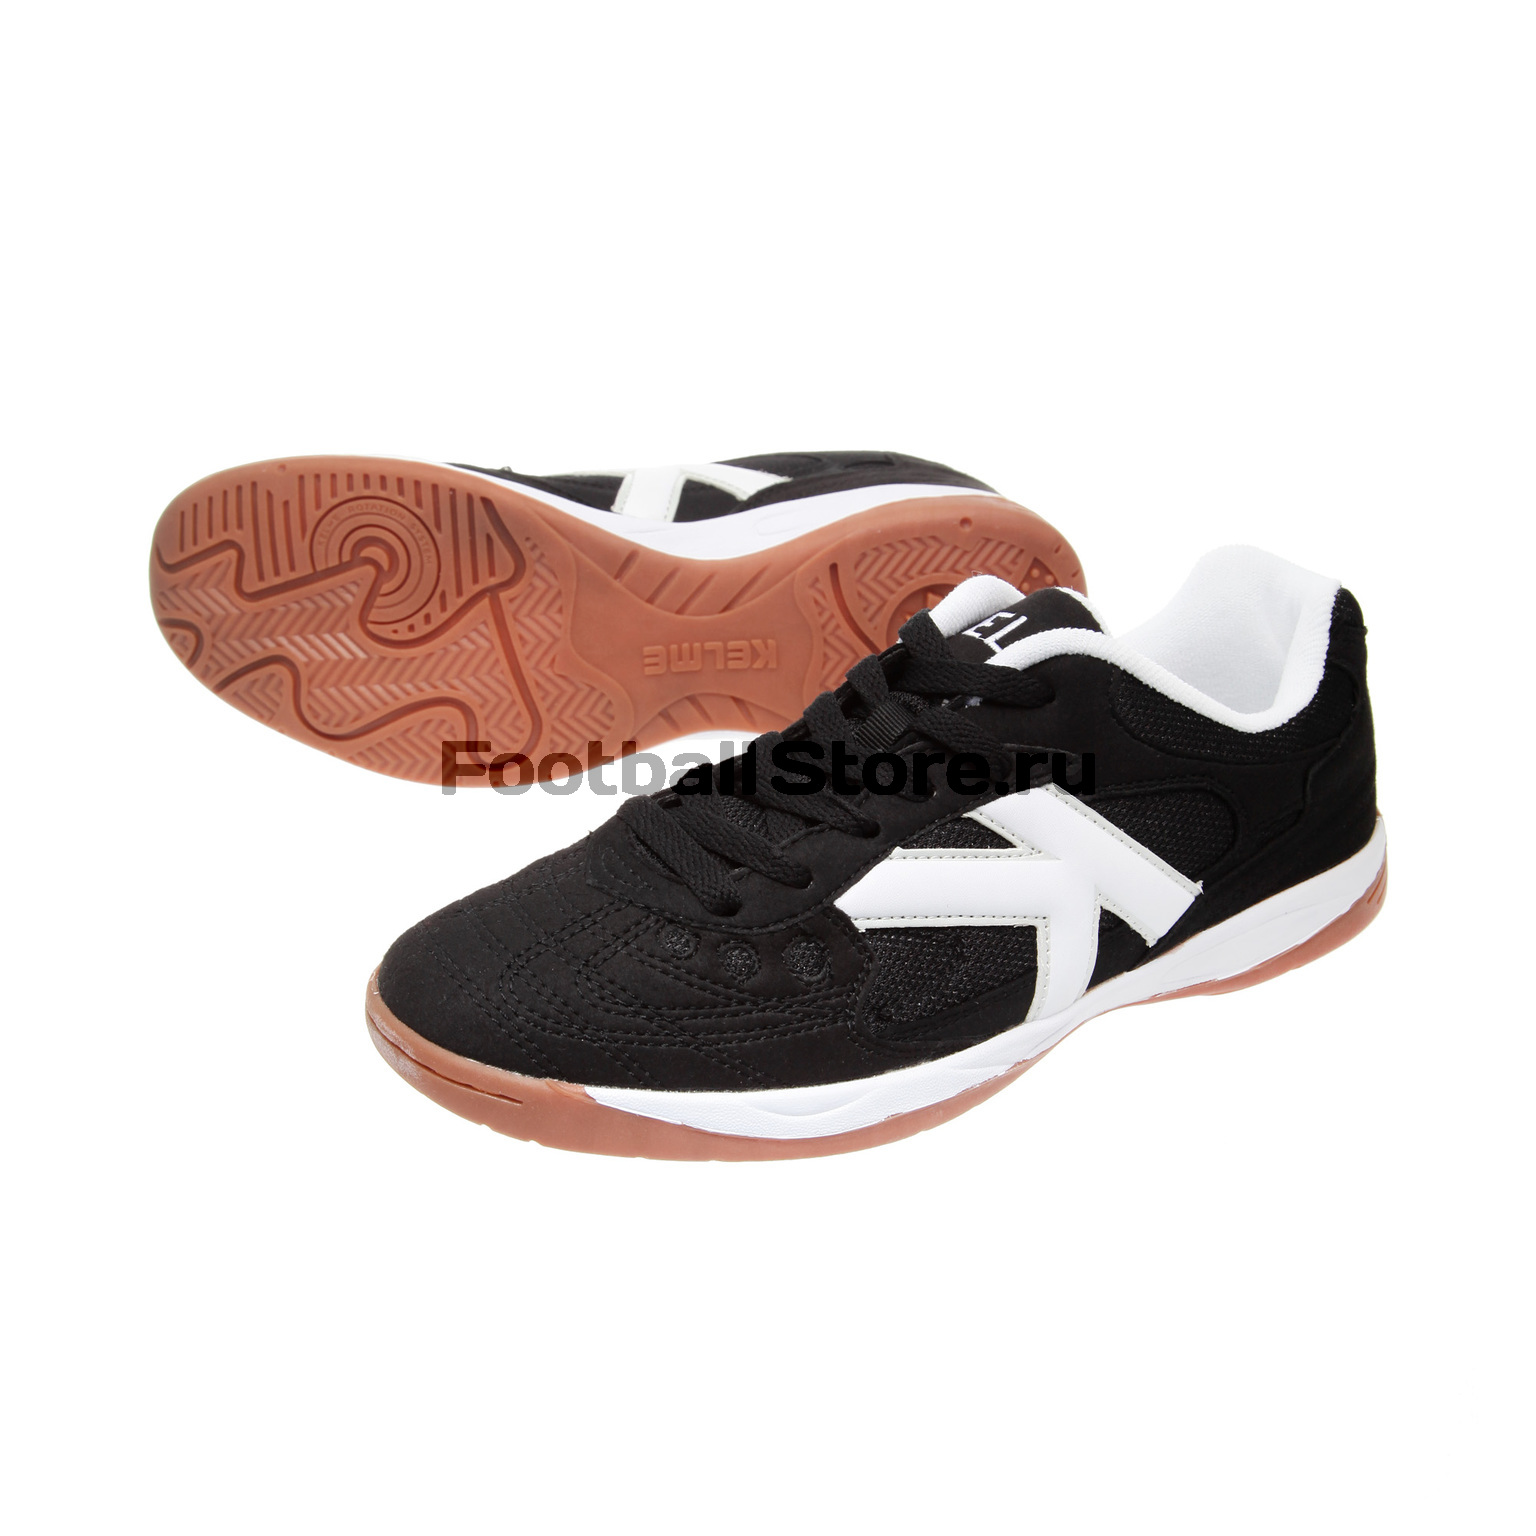 Обувь для зала Kelme Indoor Copa 55257-026 обувь для зала kelme обувь для зала kelme subito 5 0 55803 026